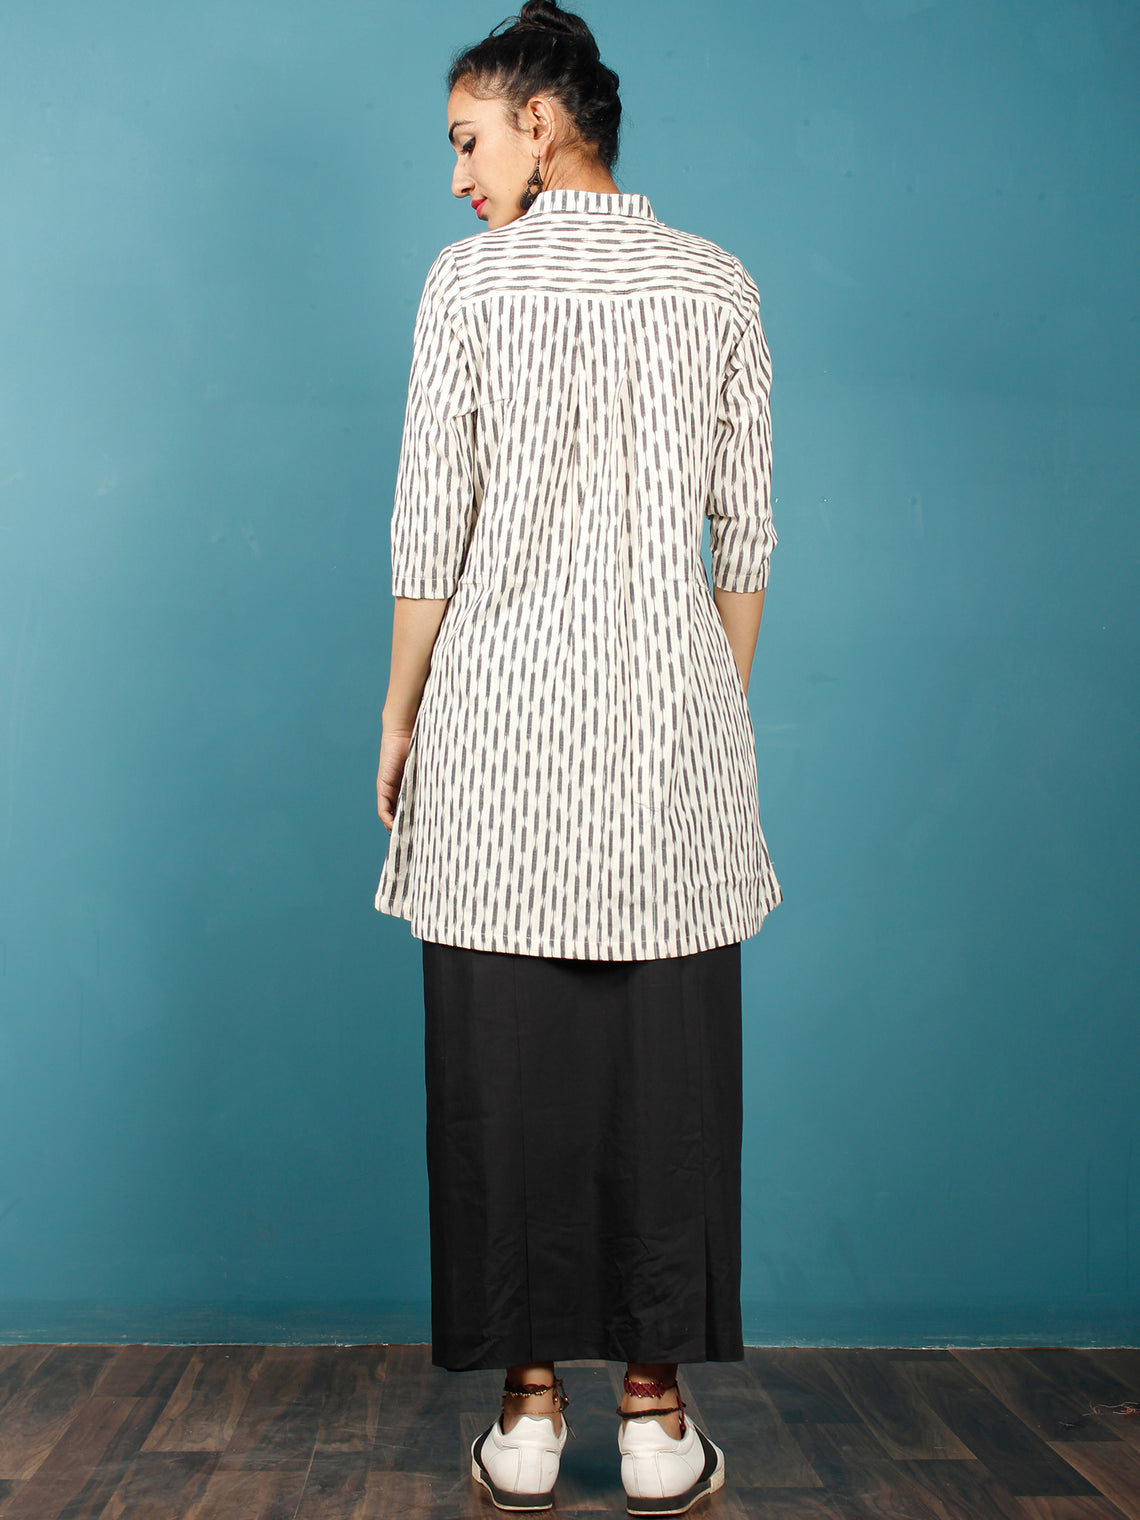 Off White Grey Hand Woven Ikat Cotton Tunic With Stand Collar  - Tun08F751